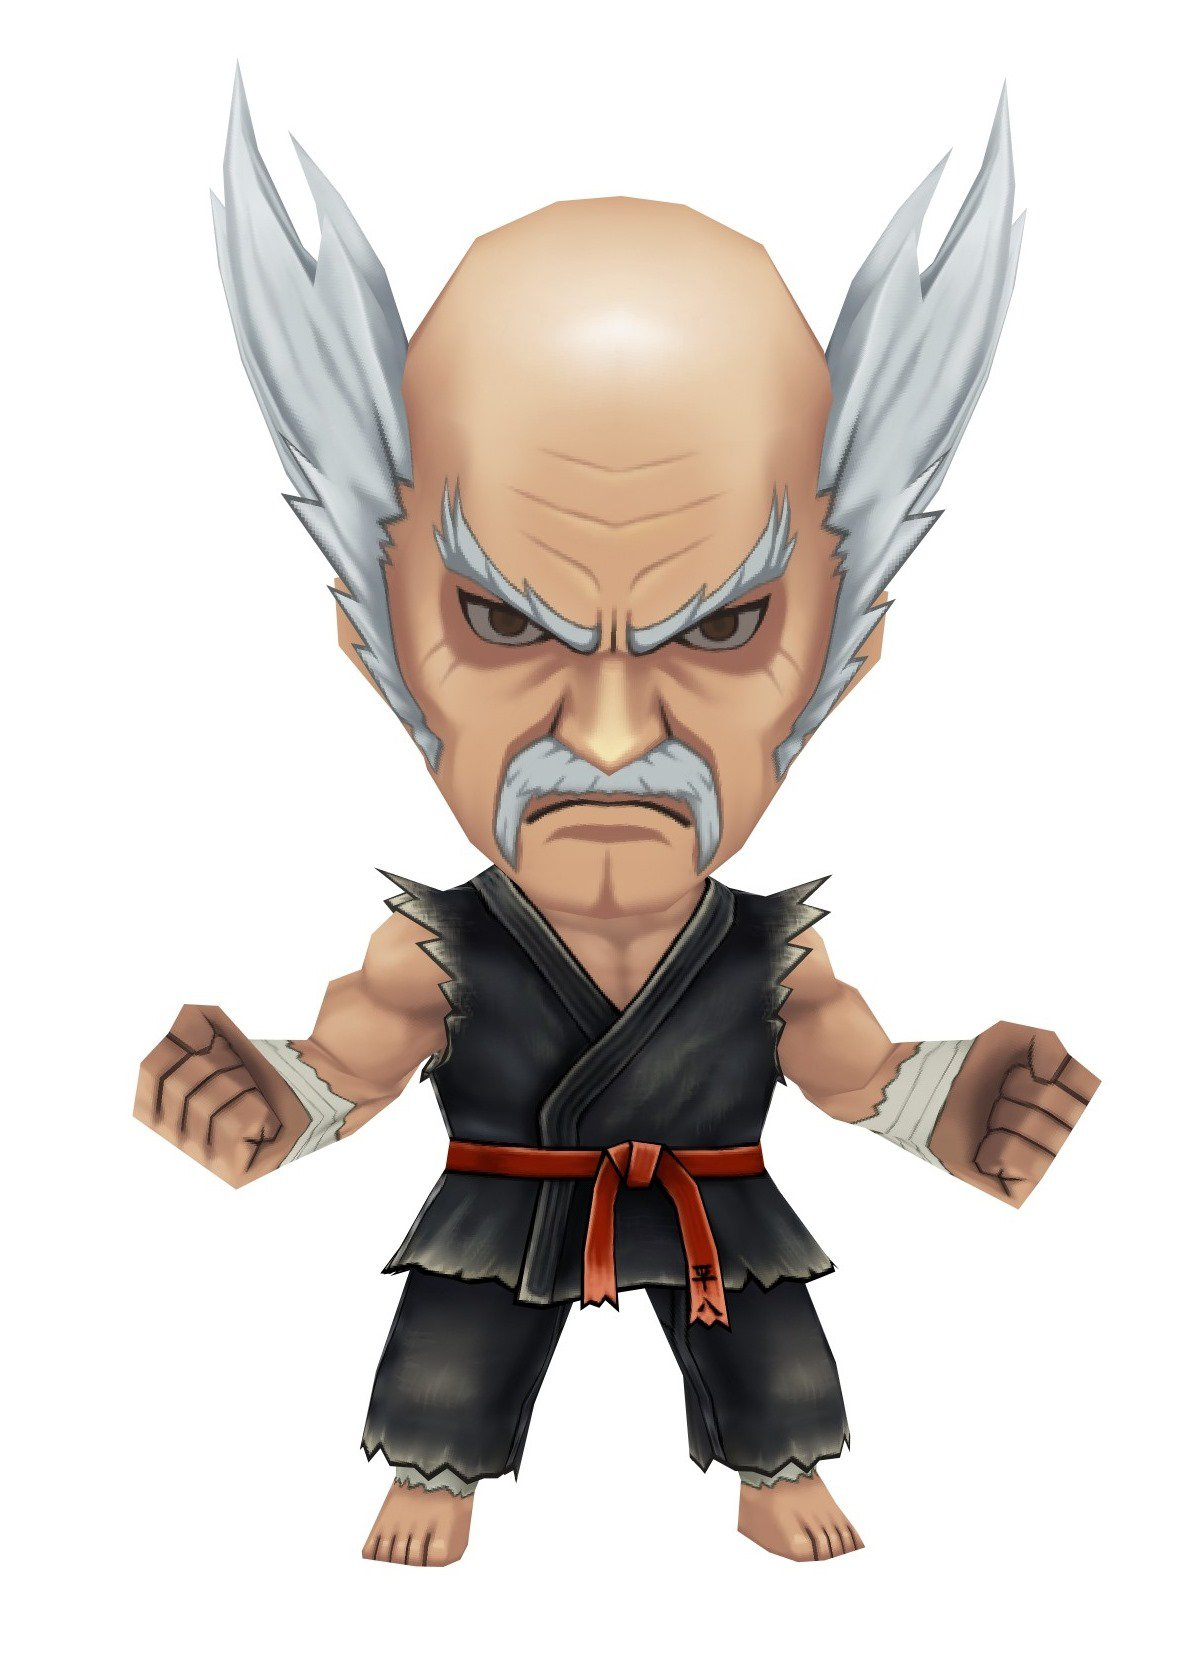 The Characters Of The Cups: Heihachi Mishima